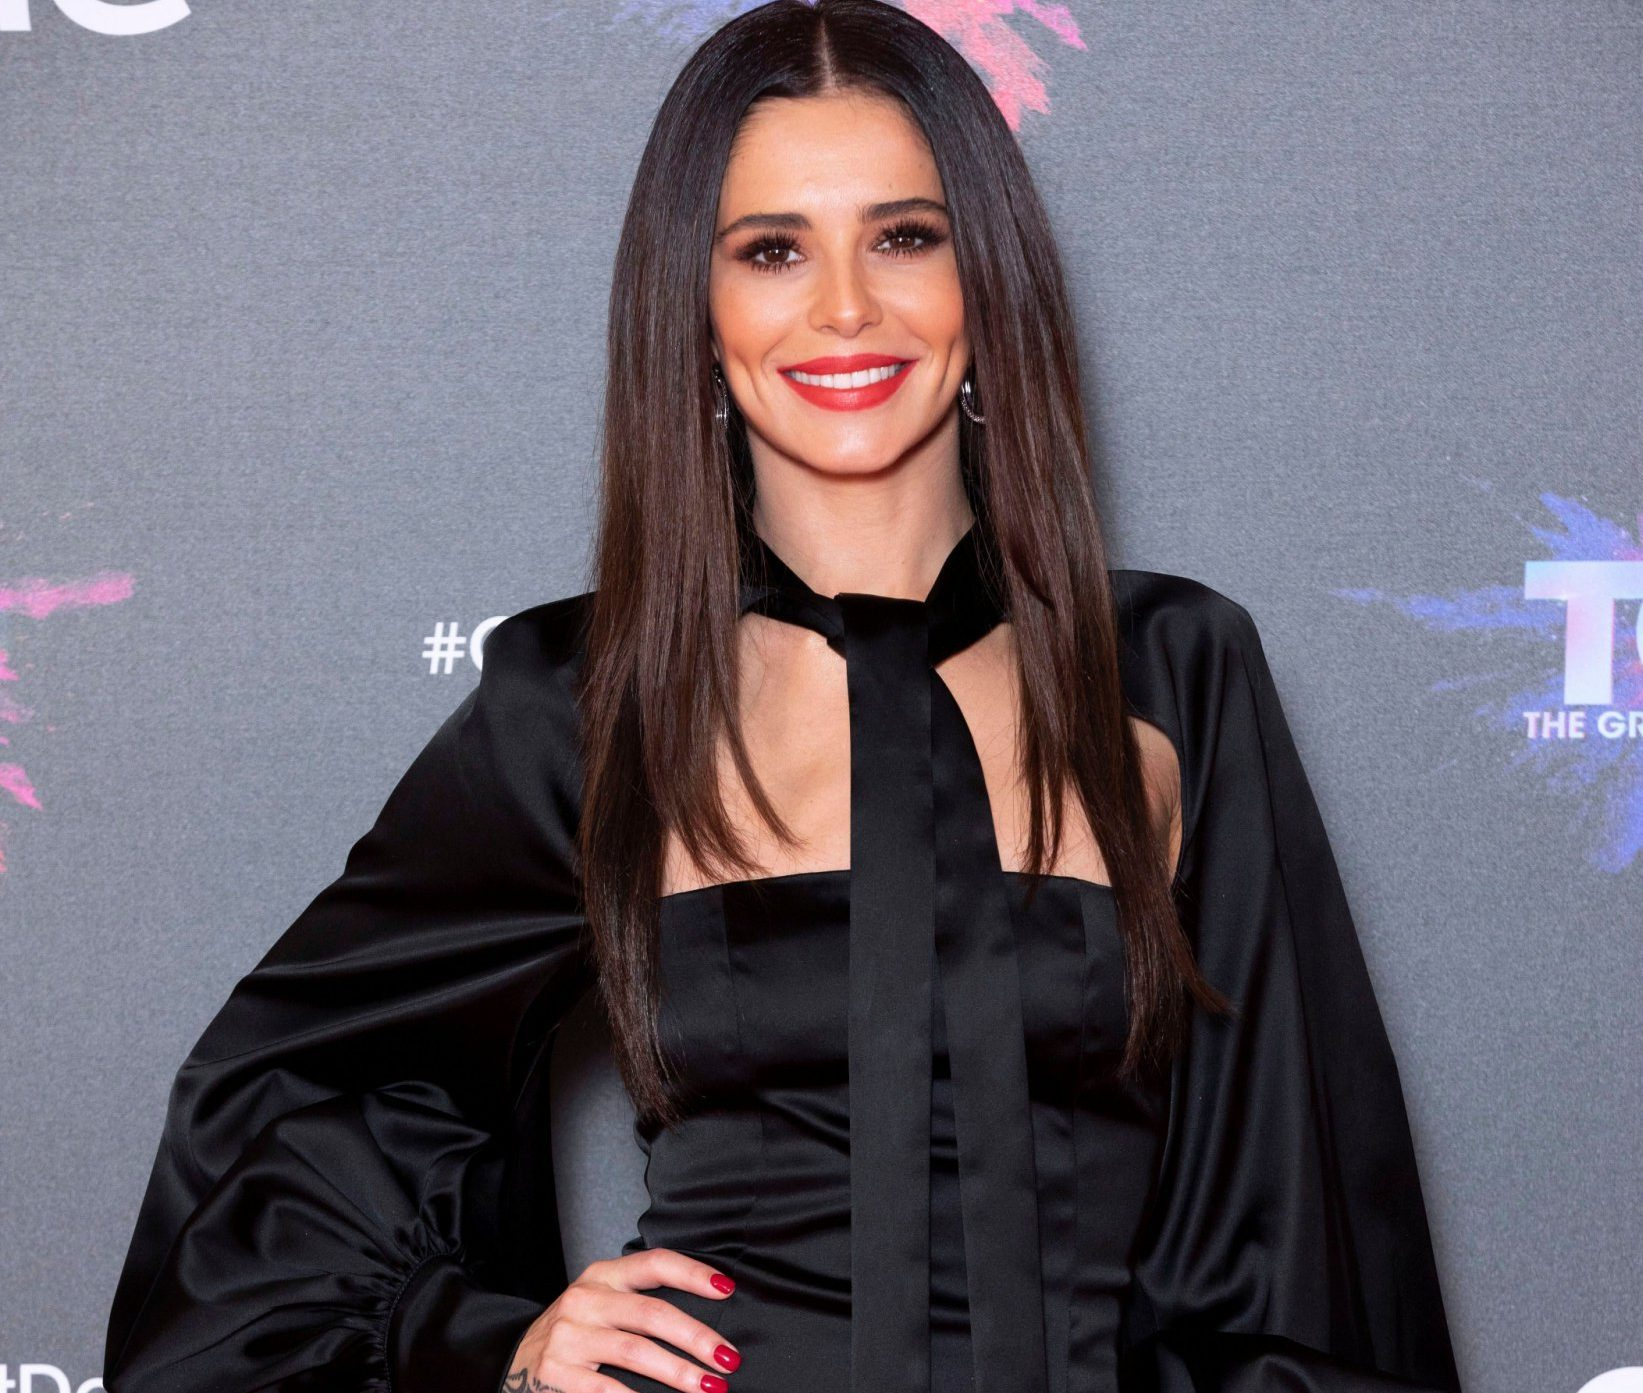 Cheryl vows she 'hasn't given up on love' as she opens up on single life after Liam Payne split